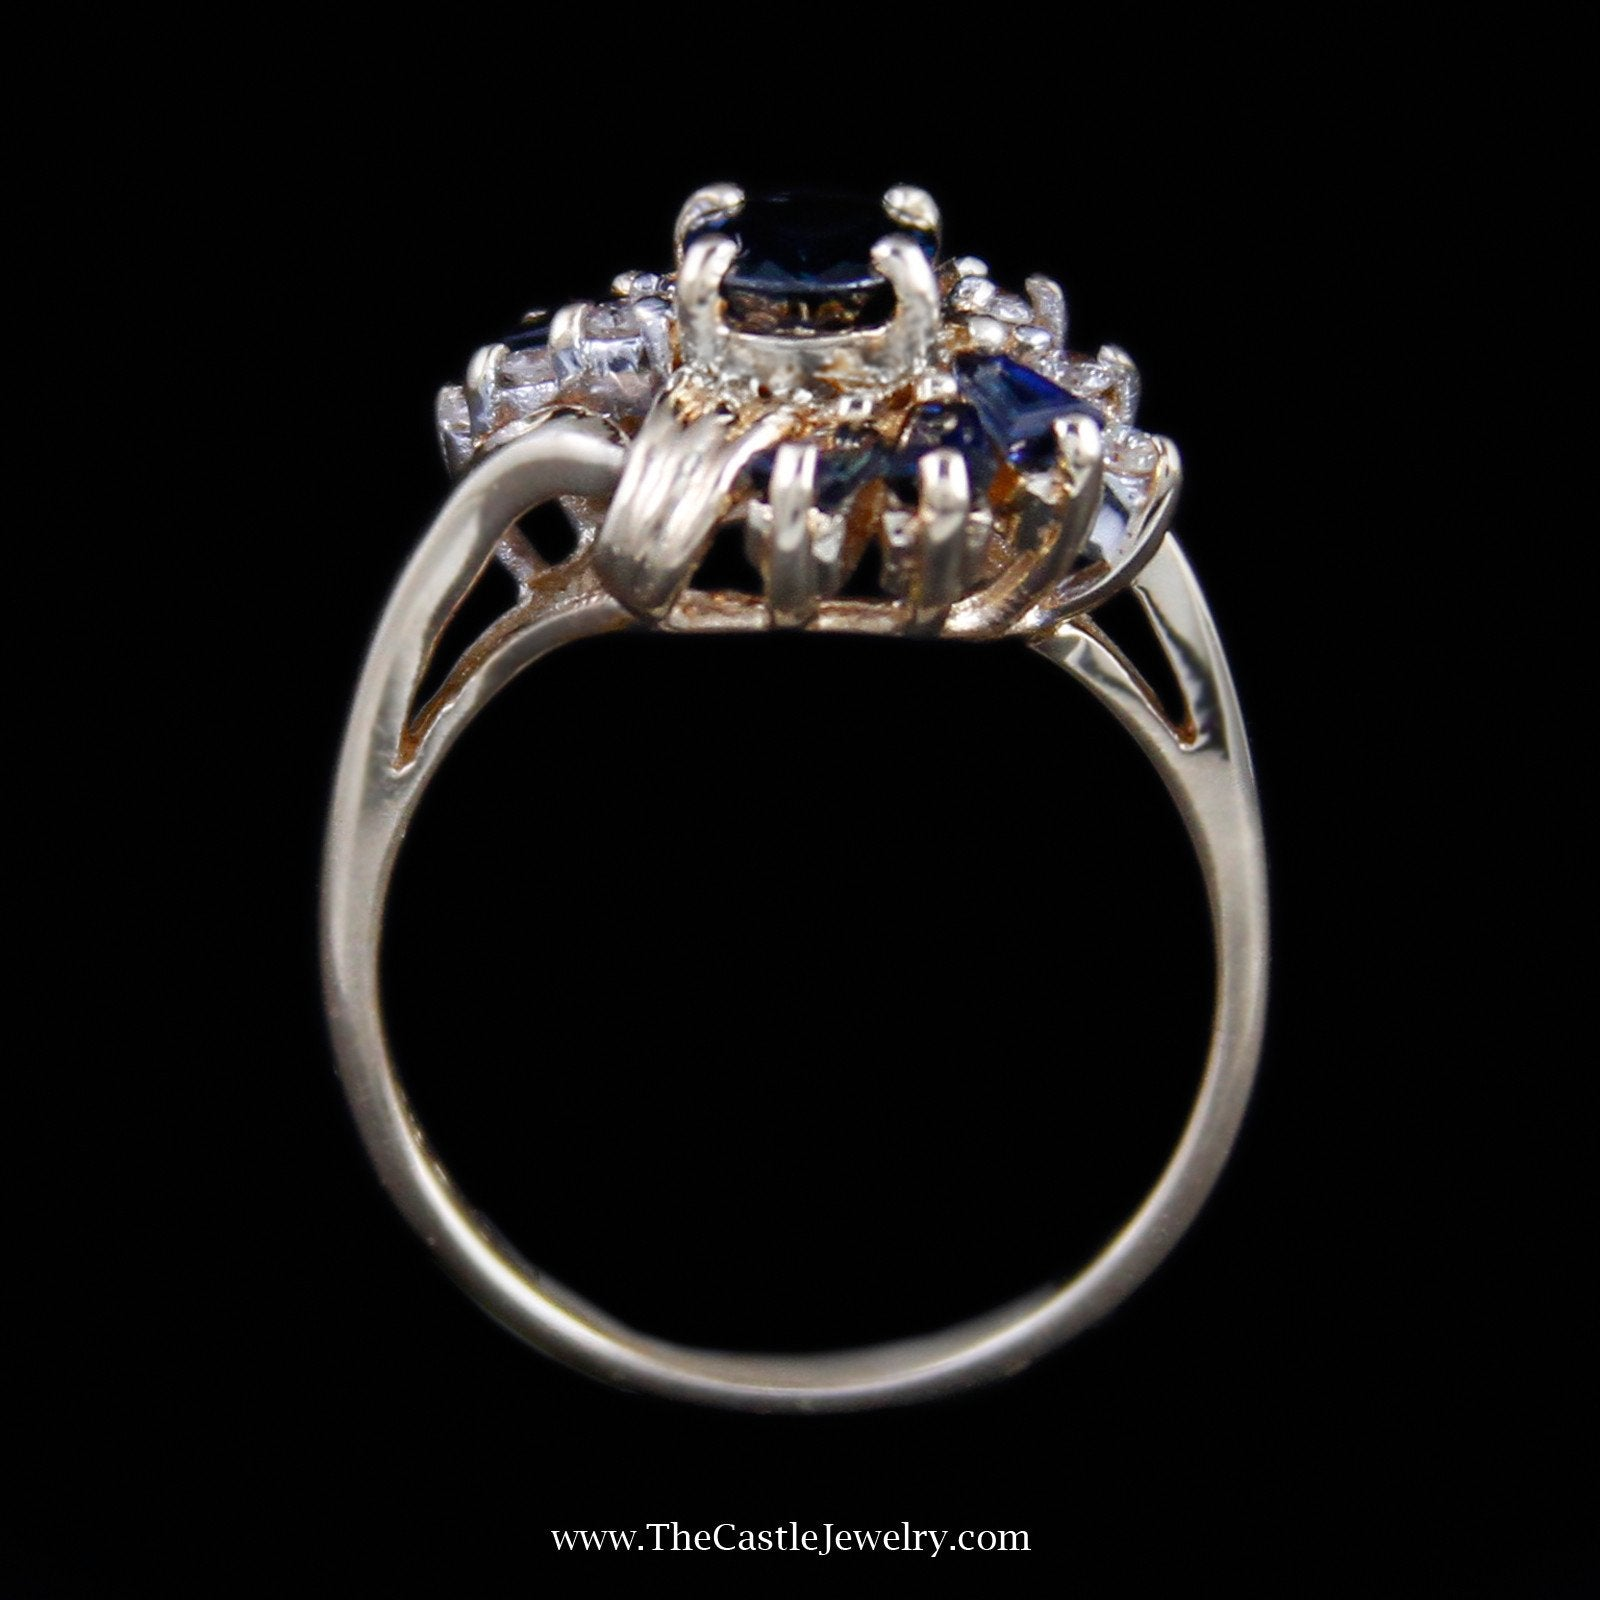 Beautiful Oval Cut Sapphire Ring with Baguette Sapphire & Round Diamond Sides-1